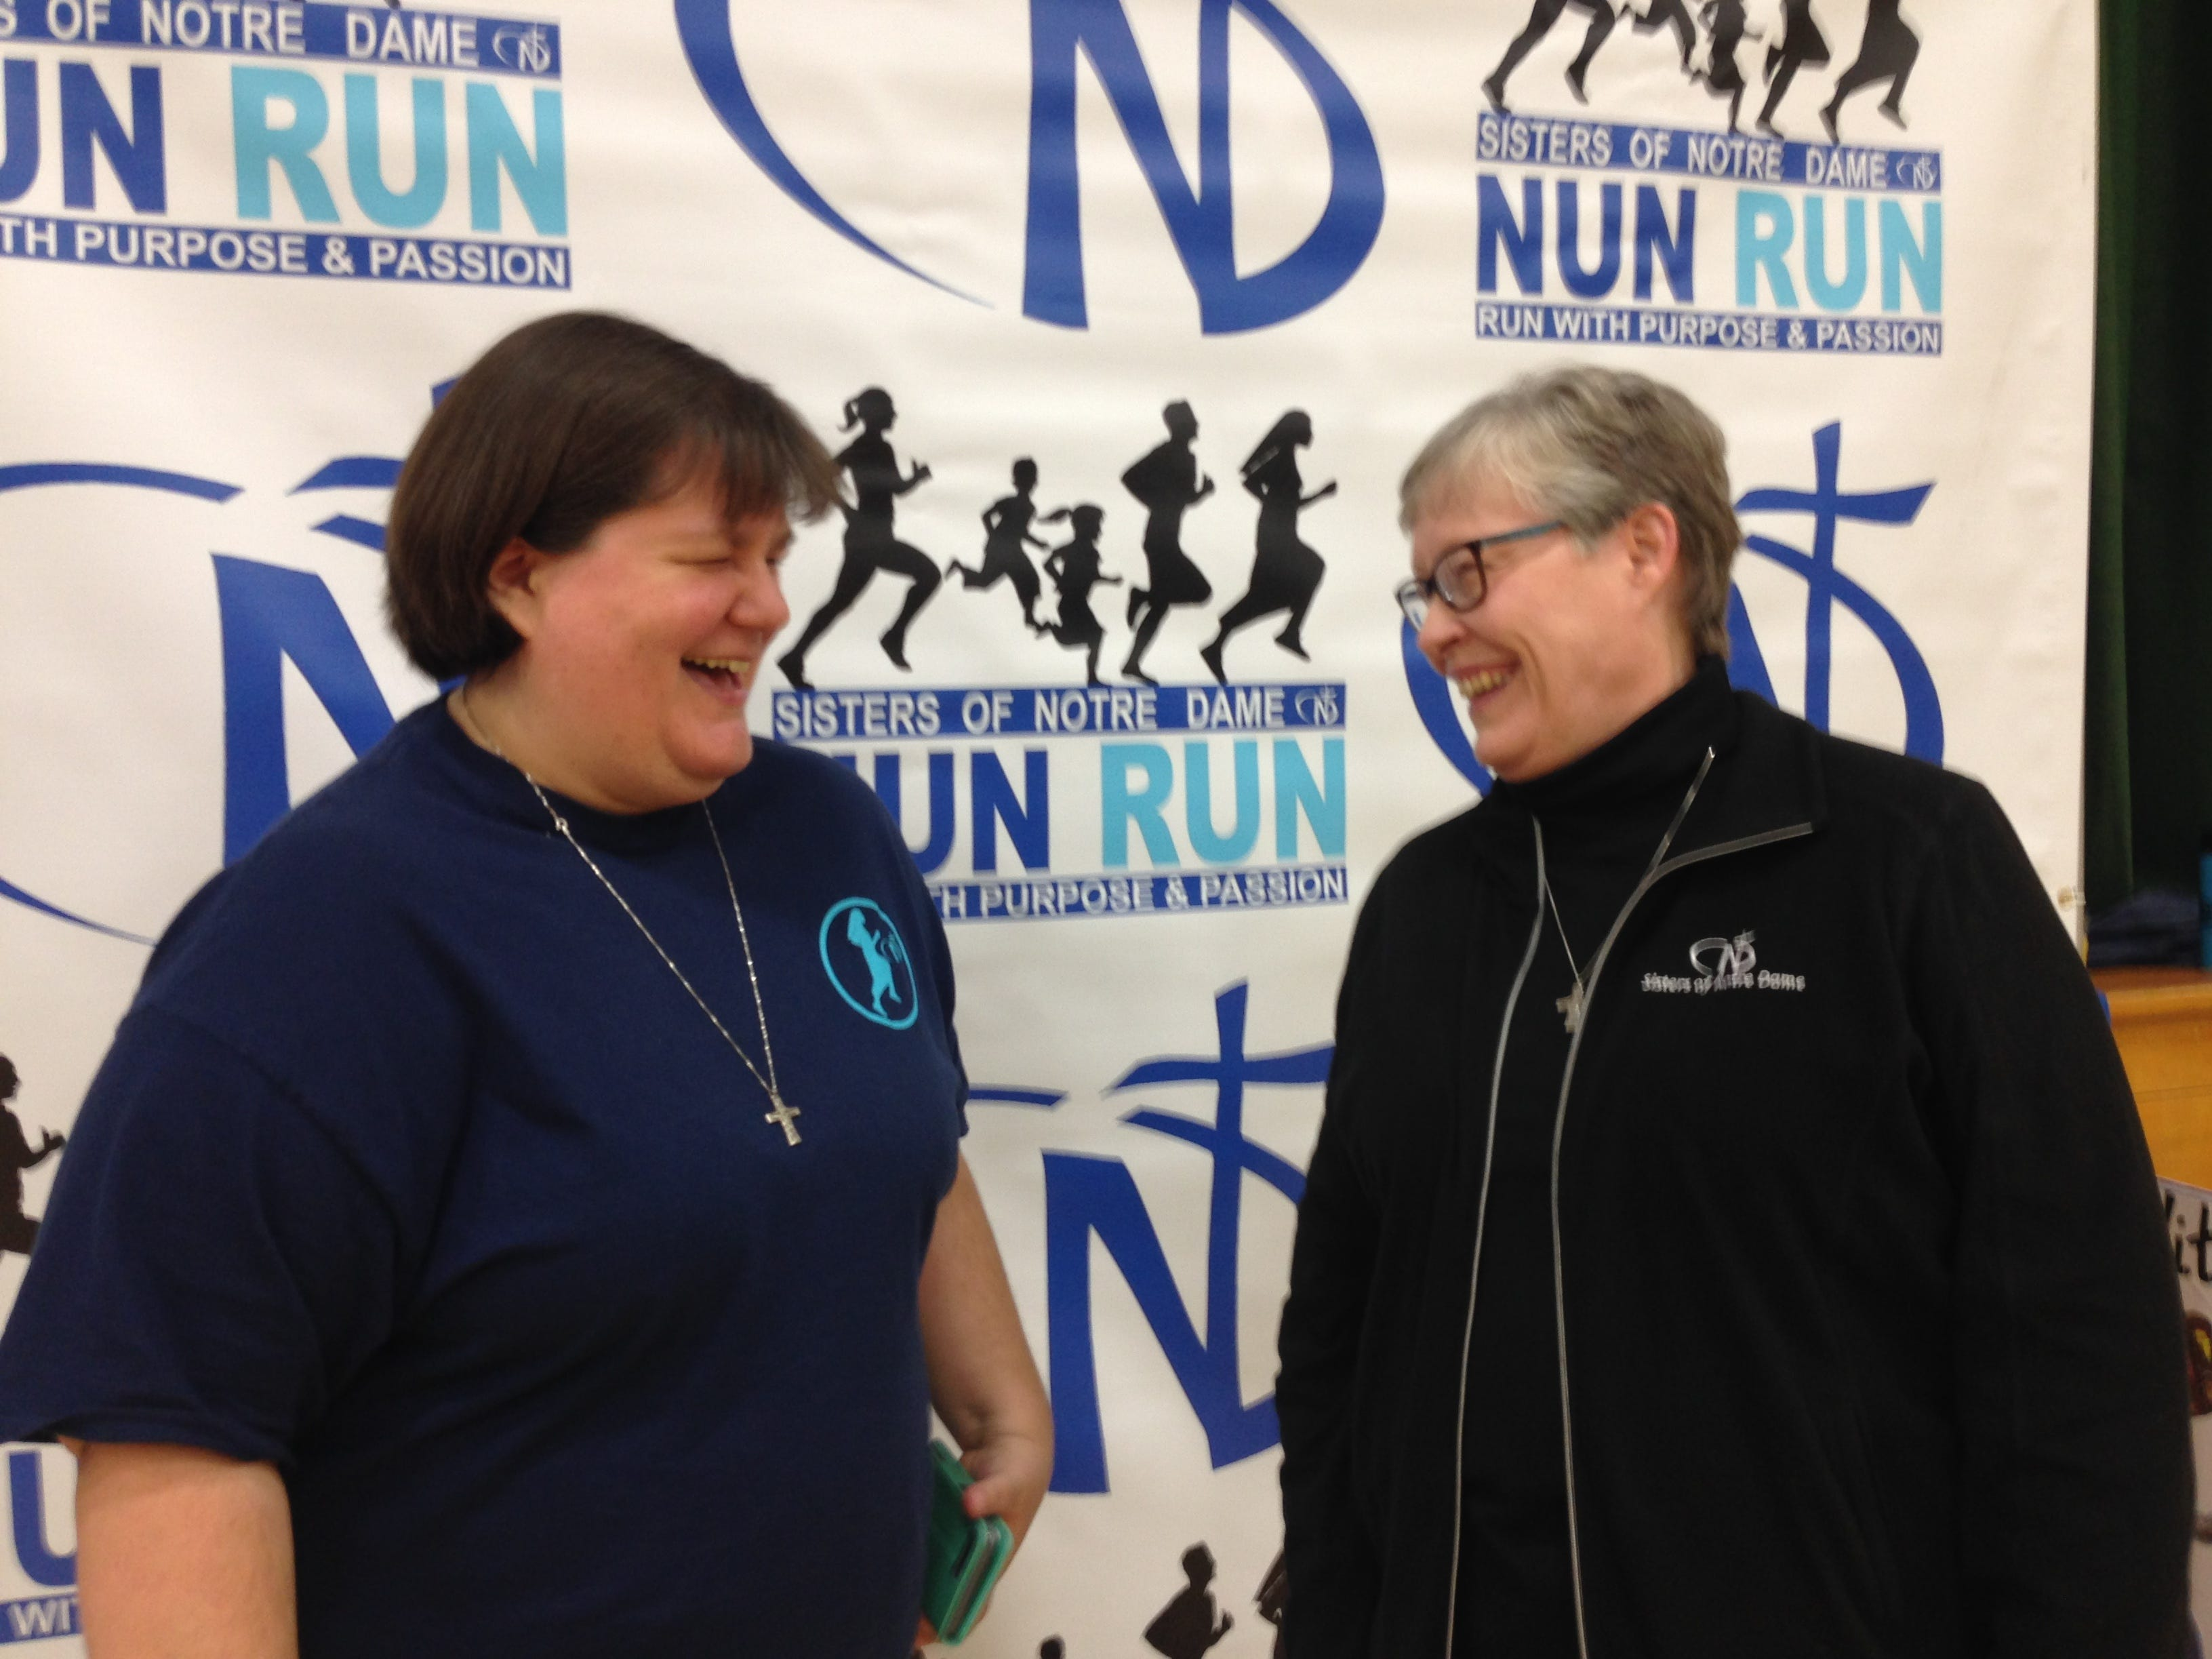 Sister Jenny Zimmerman and Sister Val Roxburgh, of Long Beach, banter with each other during the community service fair inside the school gymnasium during the fifth annual Sisters of Notre Dame Nun Run, presented by La Reina High School and Middle School in Thousand Oaks on Saturday.